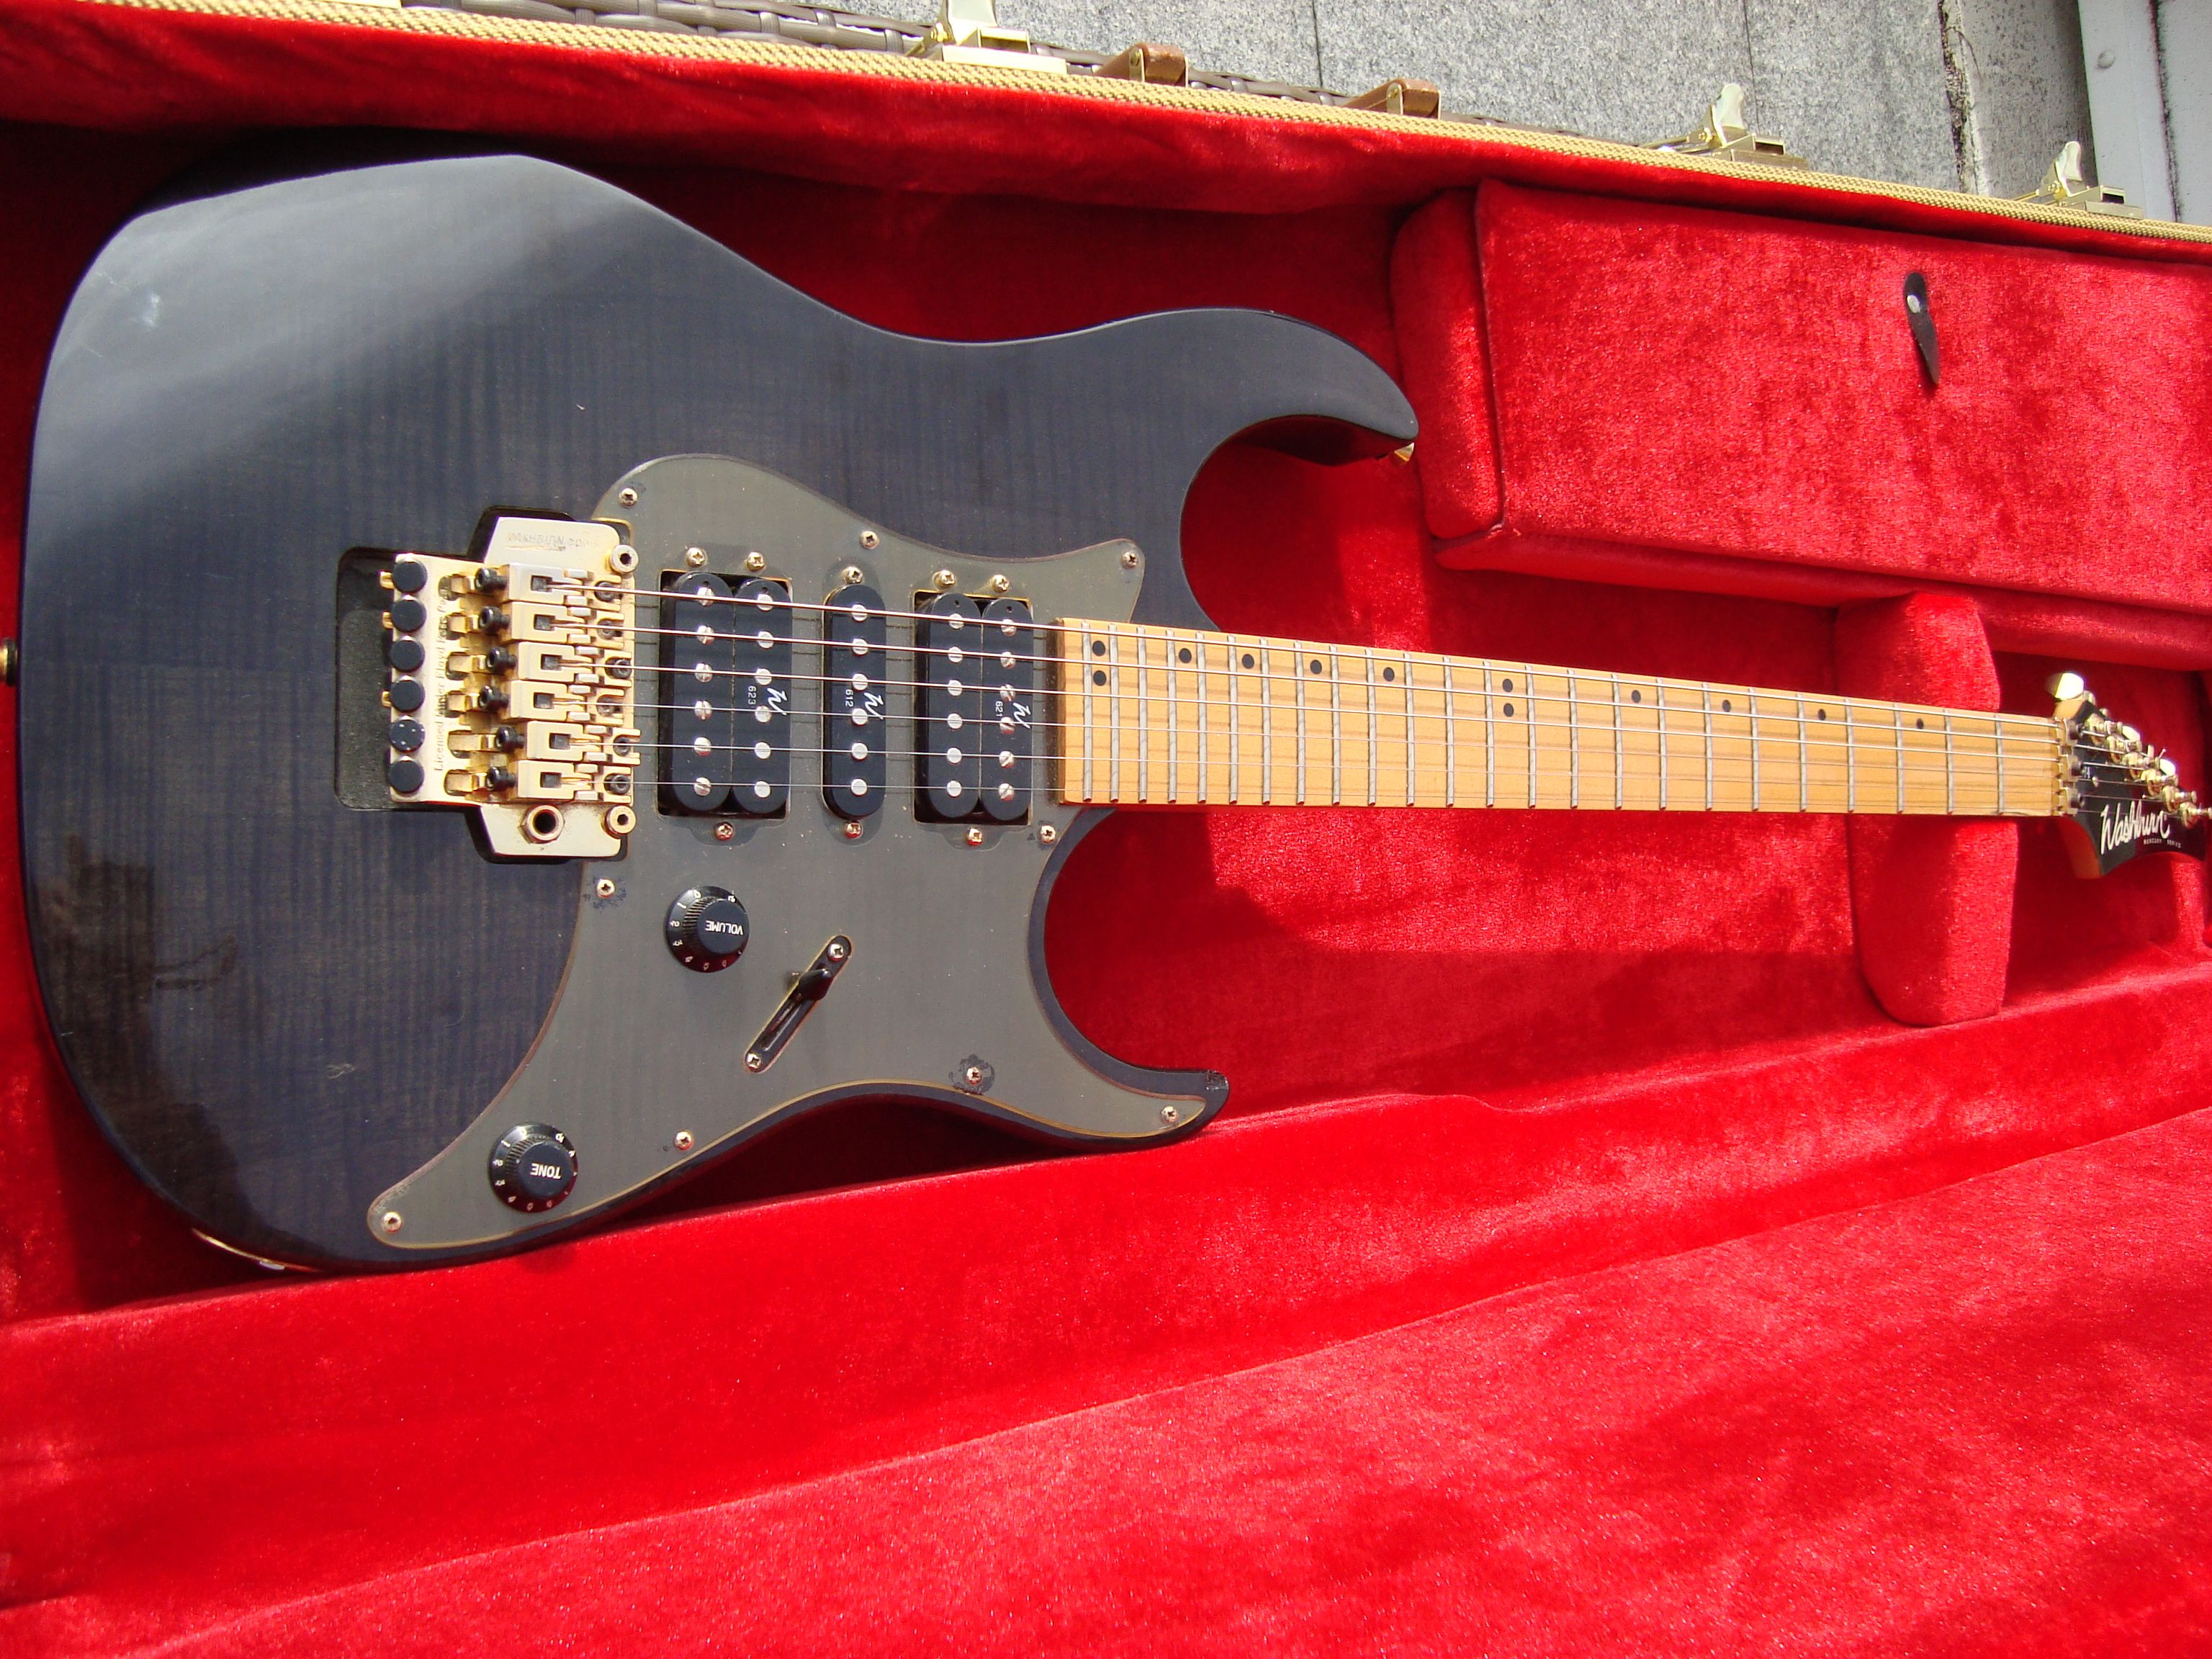 Pictures and images Washburn MG74 - Audiofanzine